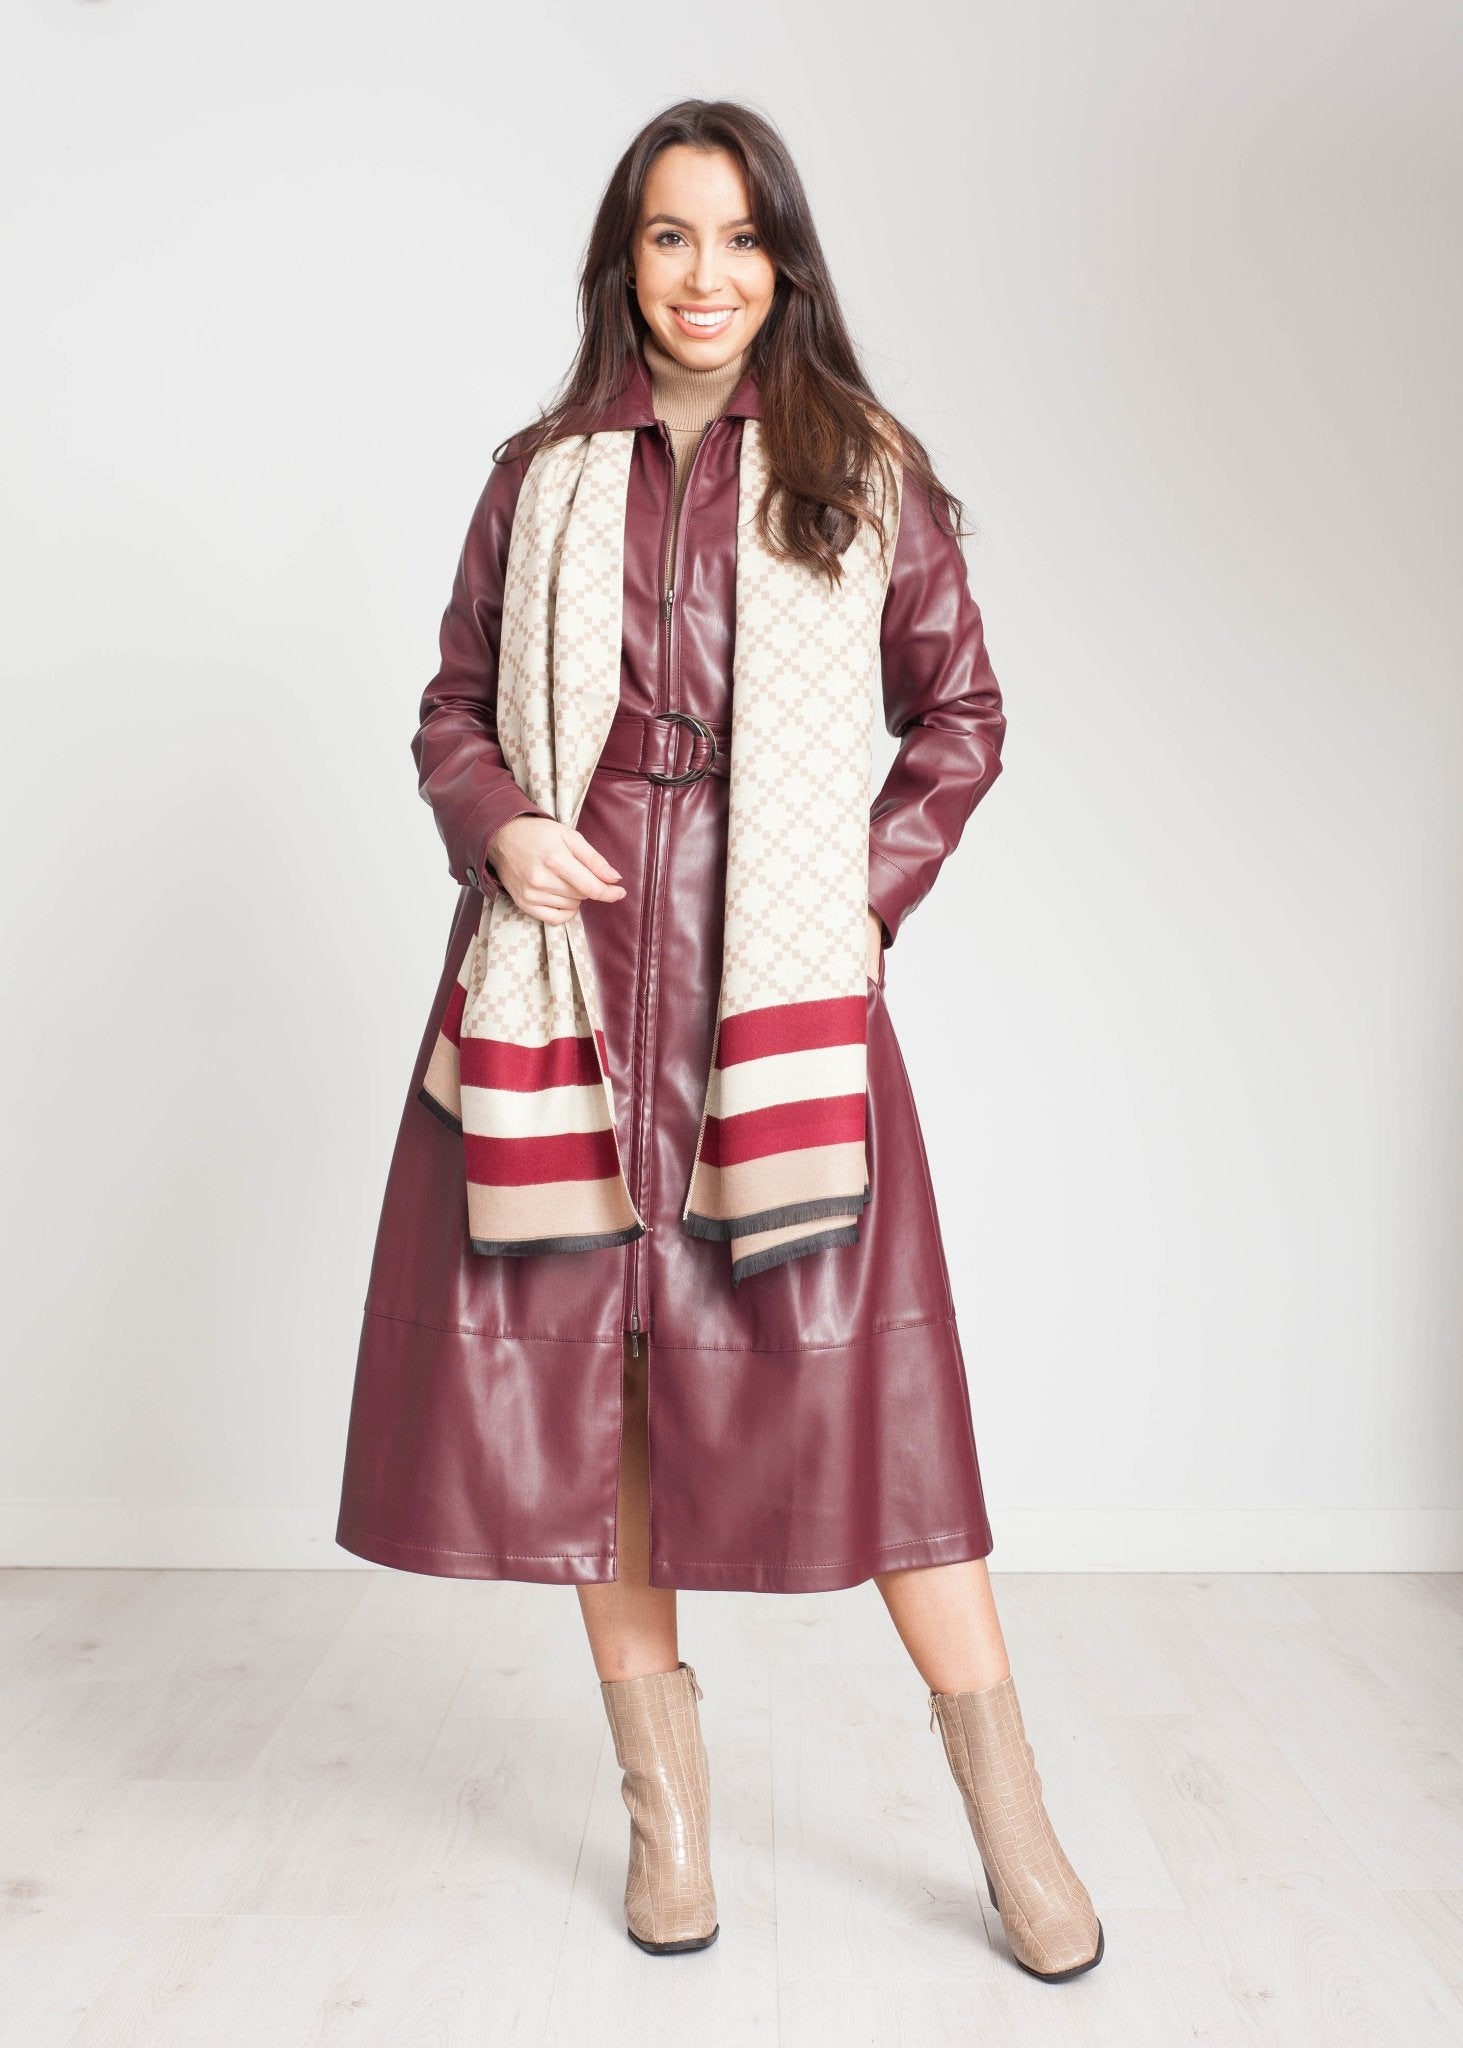 Alana Leather Dress In Burgundy - The Walk in Wardrobe